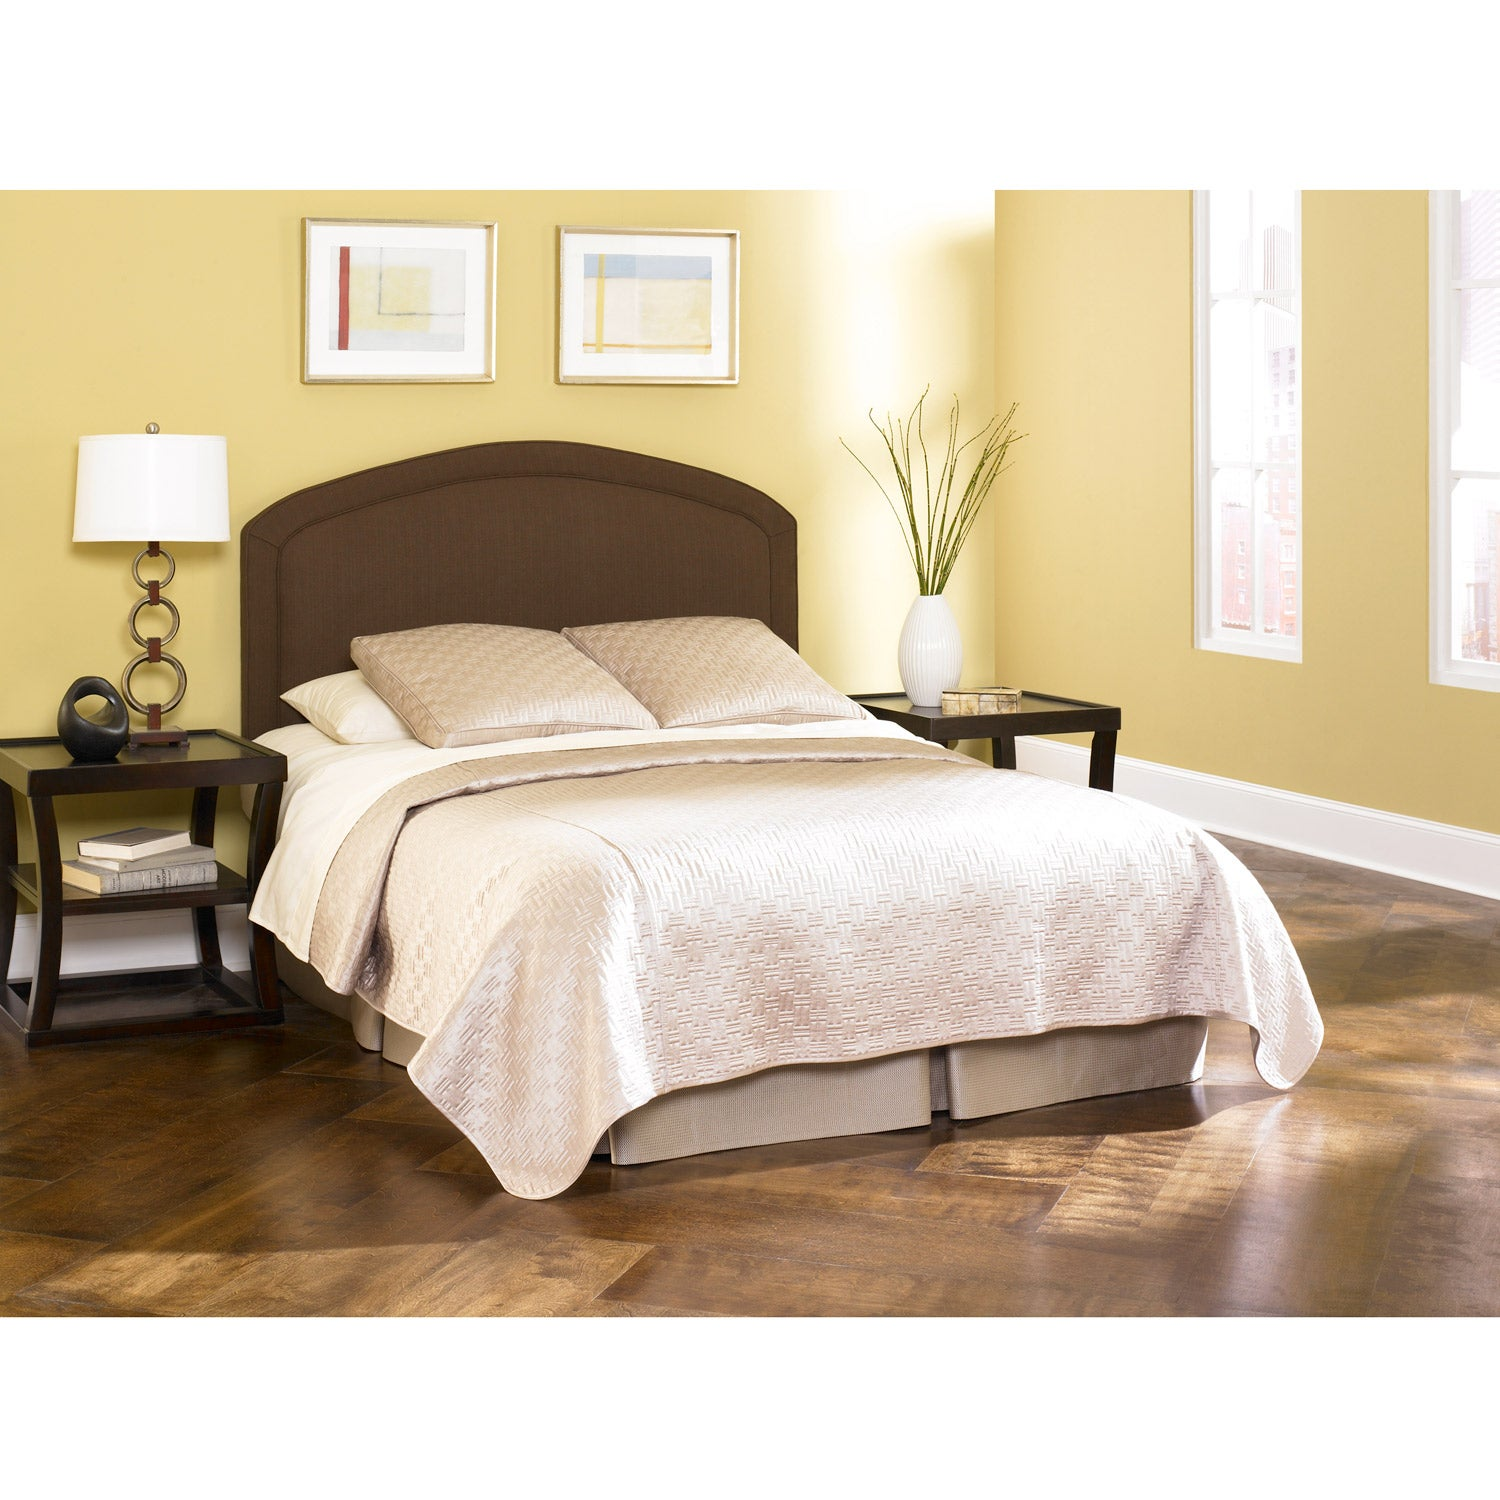 Cherbourg deep chocolate upholstered king cal king size California king headboard